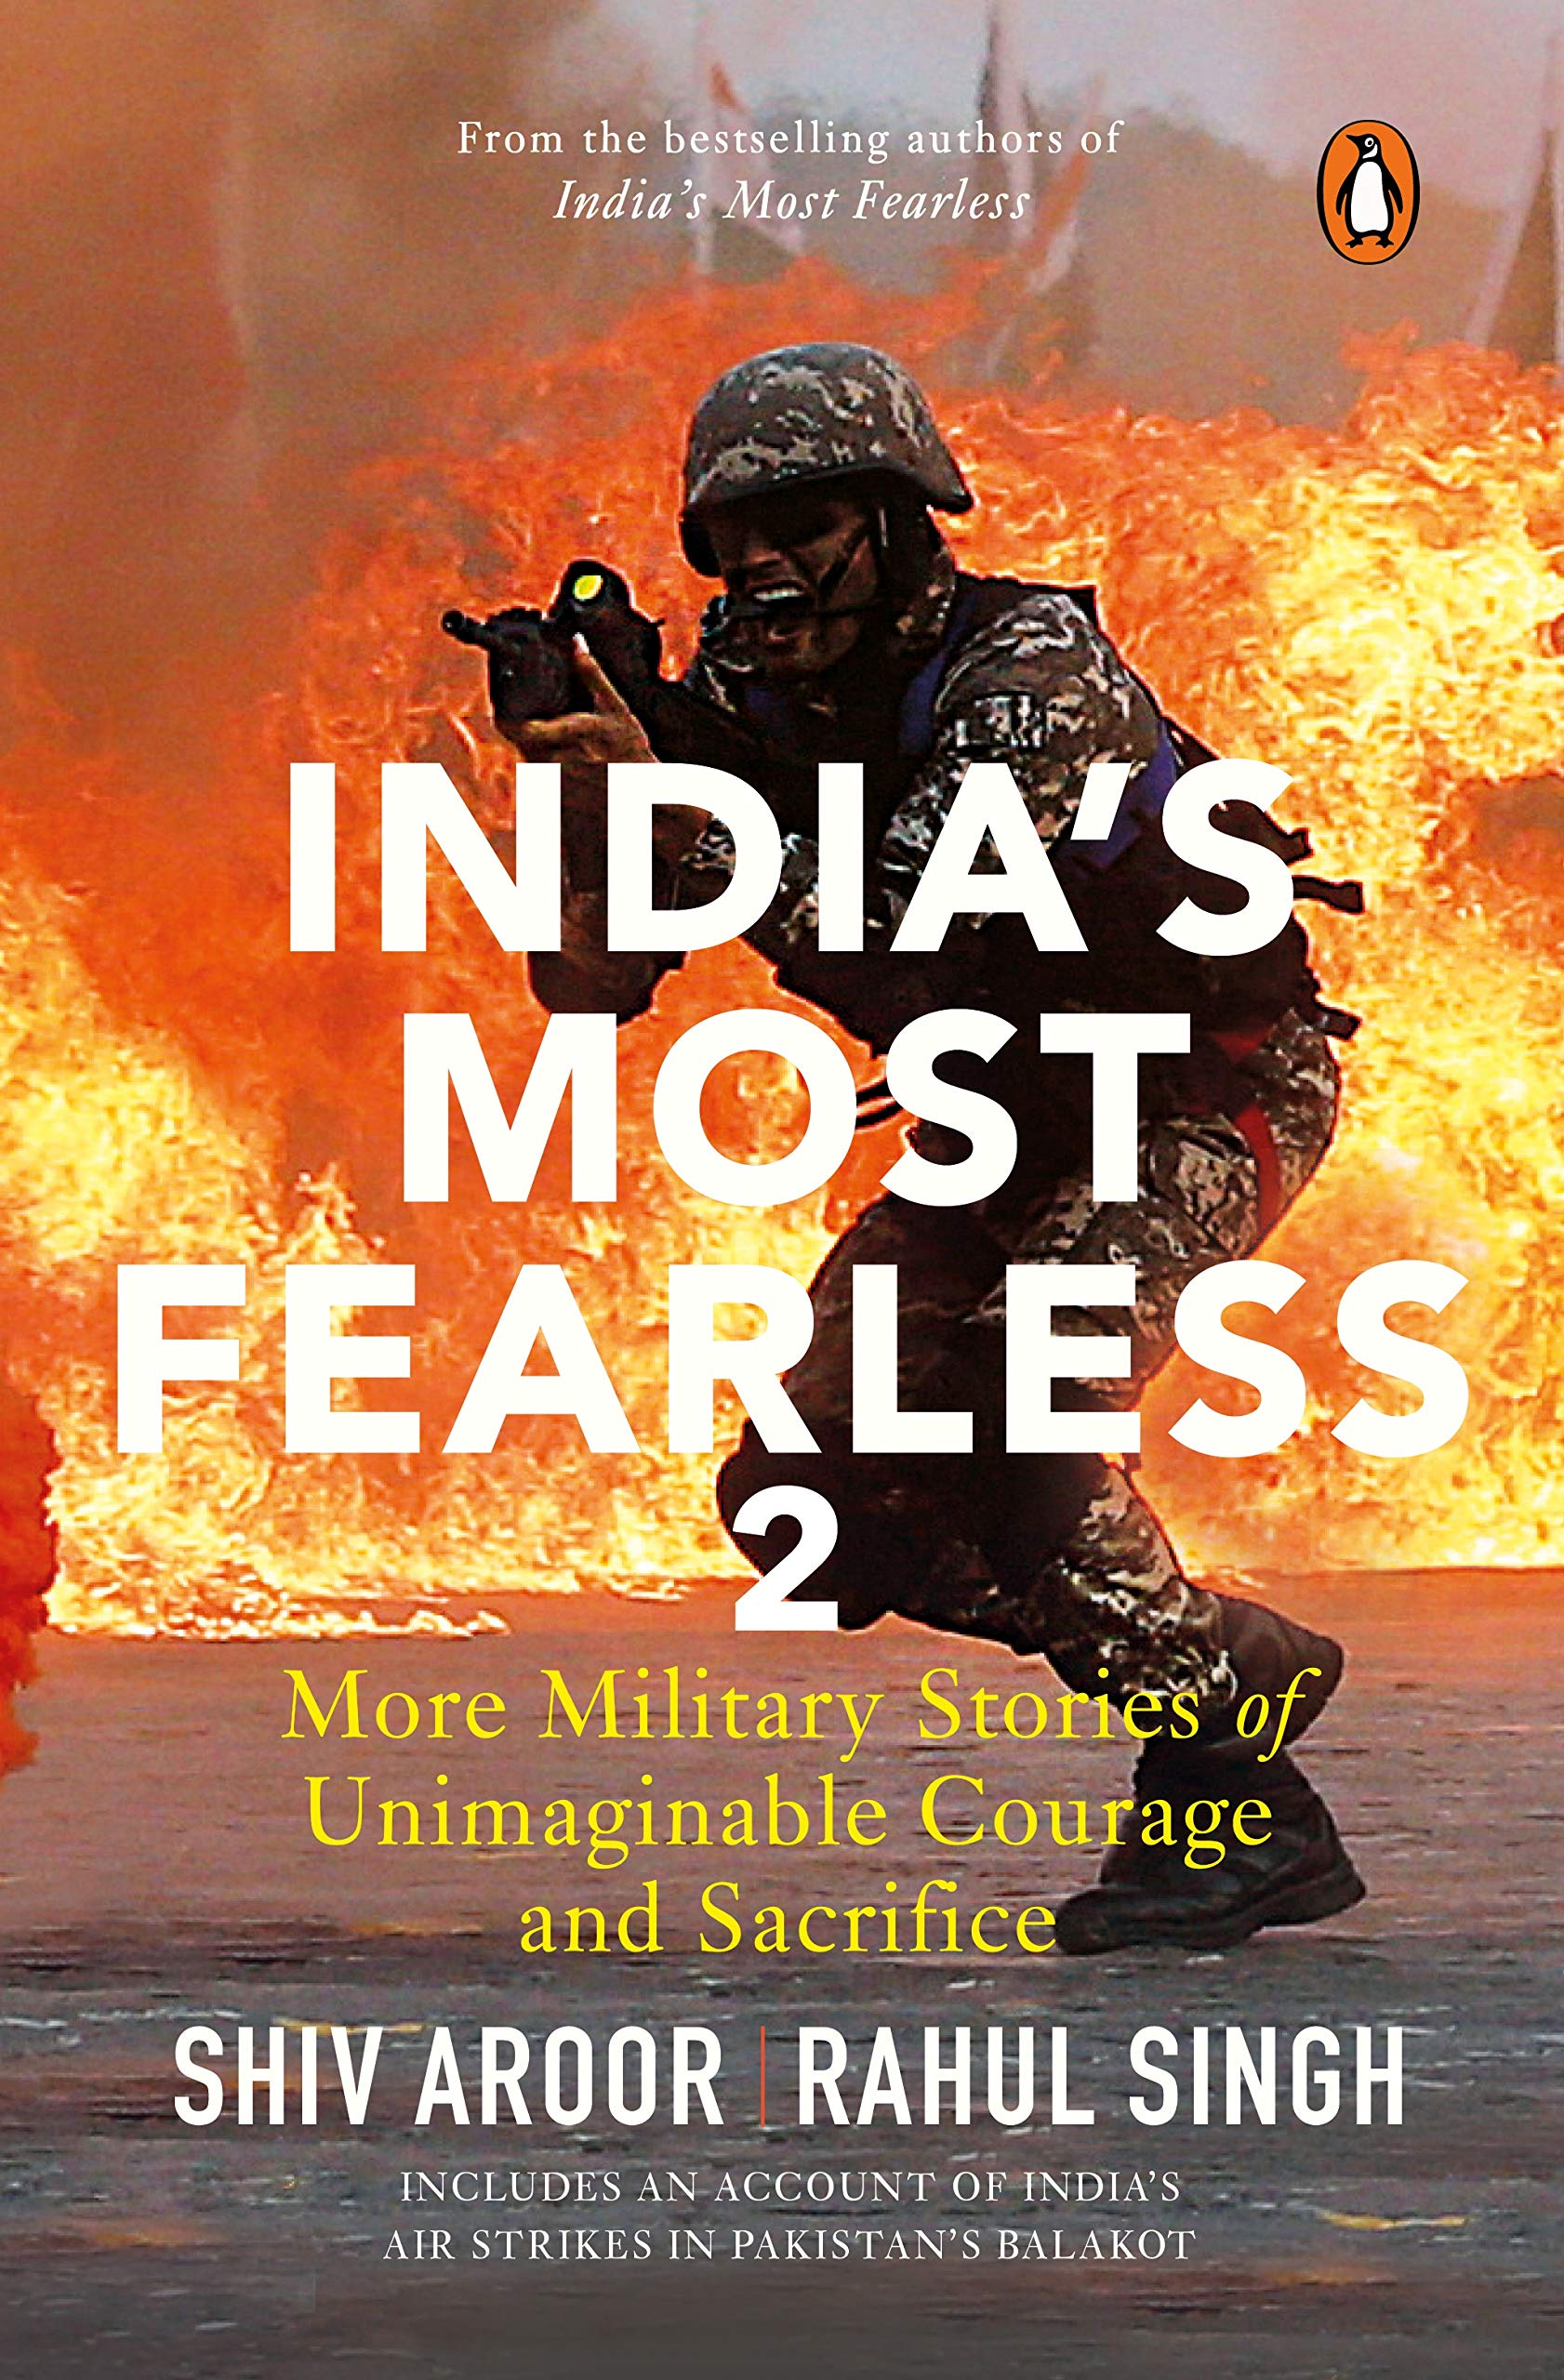 Buy India's Most Fearless 2: More Military Stories of